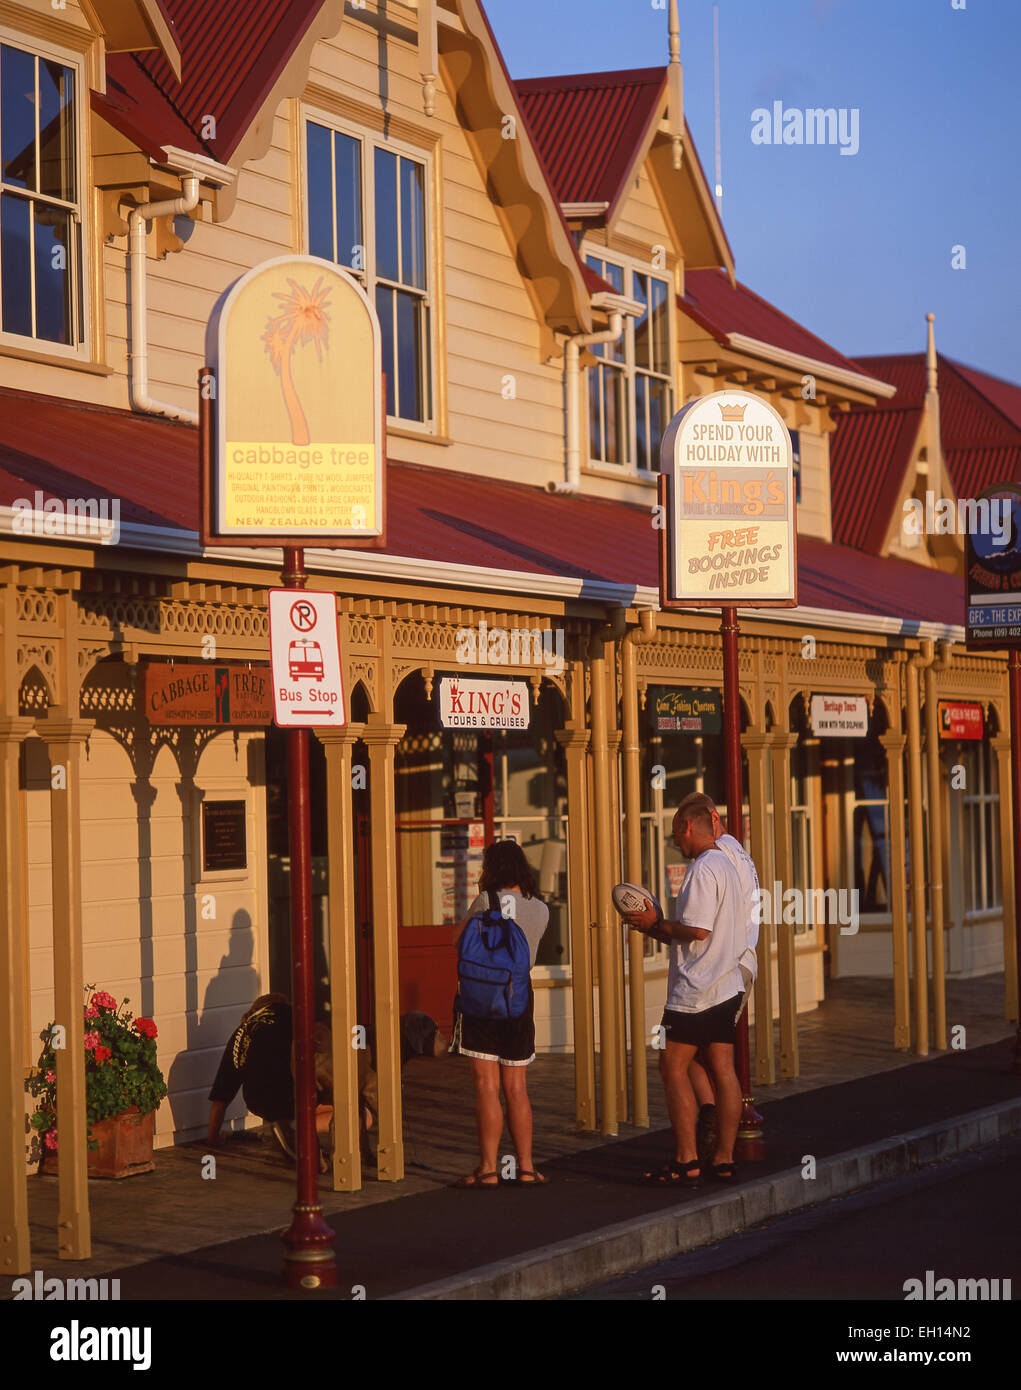 Tourist information and tour booking building at sunset, Paihia, Bay of Islands, Northland Region, North Island, Stock Photo